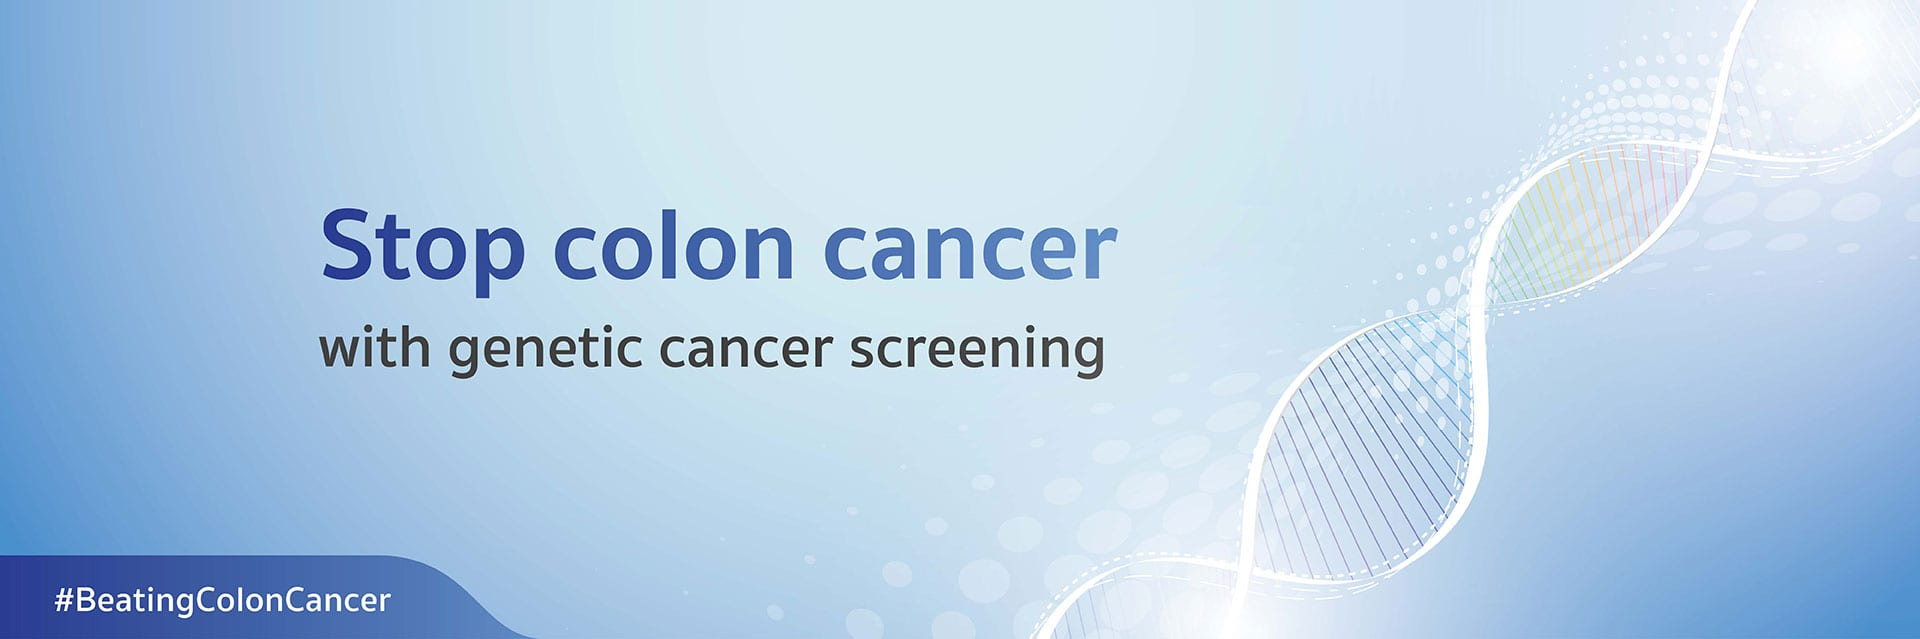 Stop colon cancer with genetic cancer screening